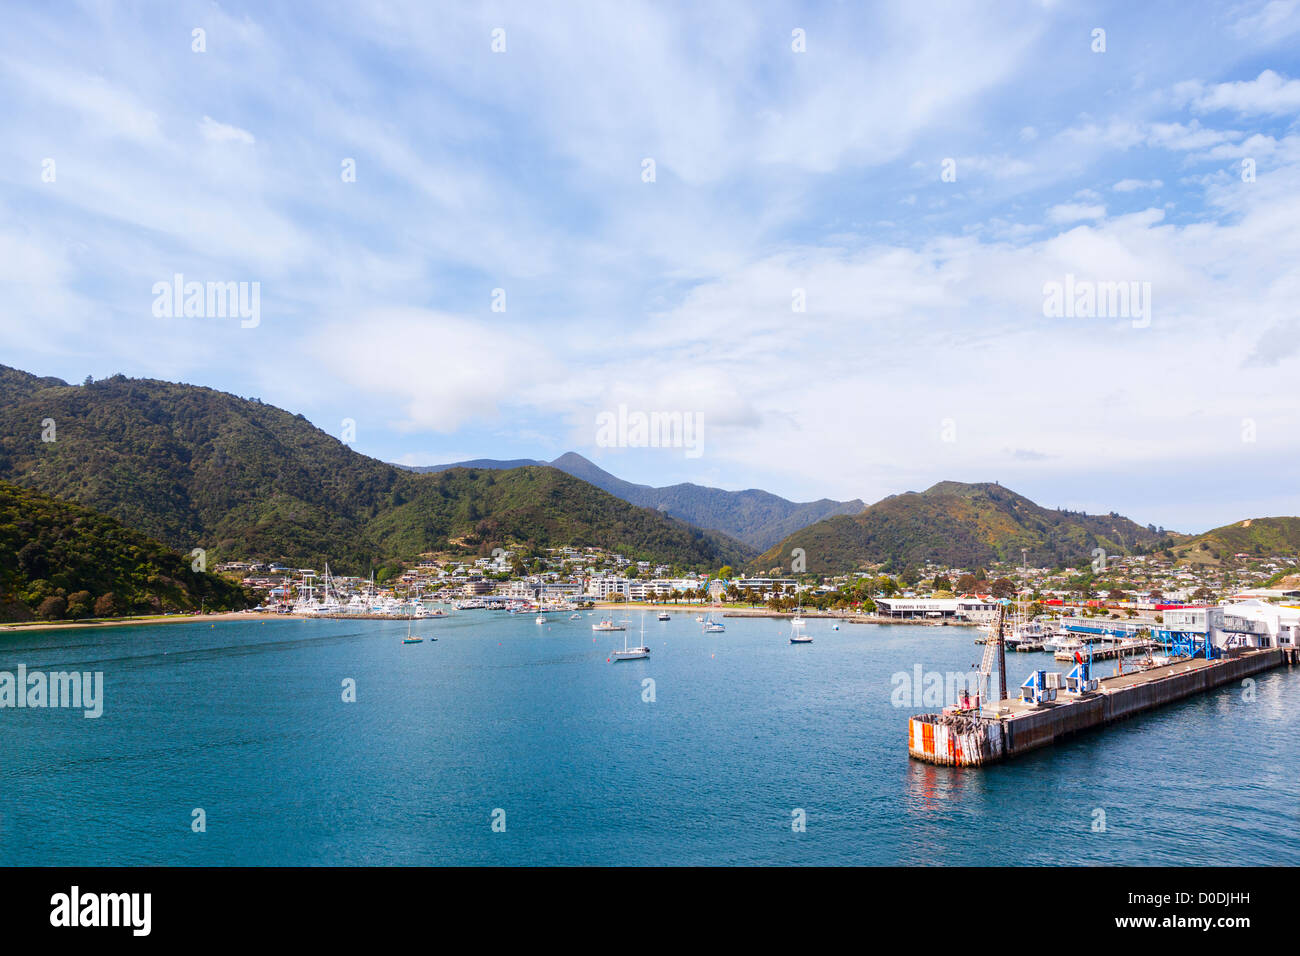 Port of Picton, Marlborough, New Zealand, from the sea. Stock Photo